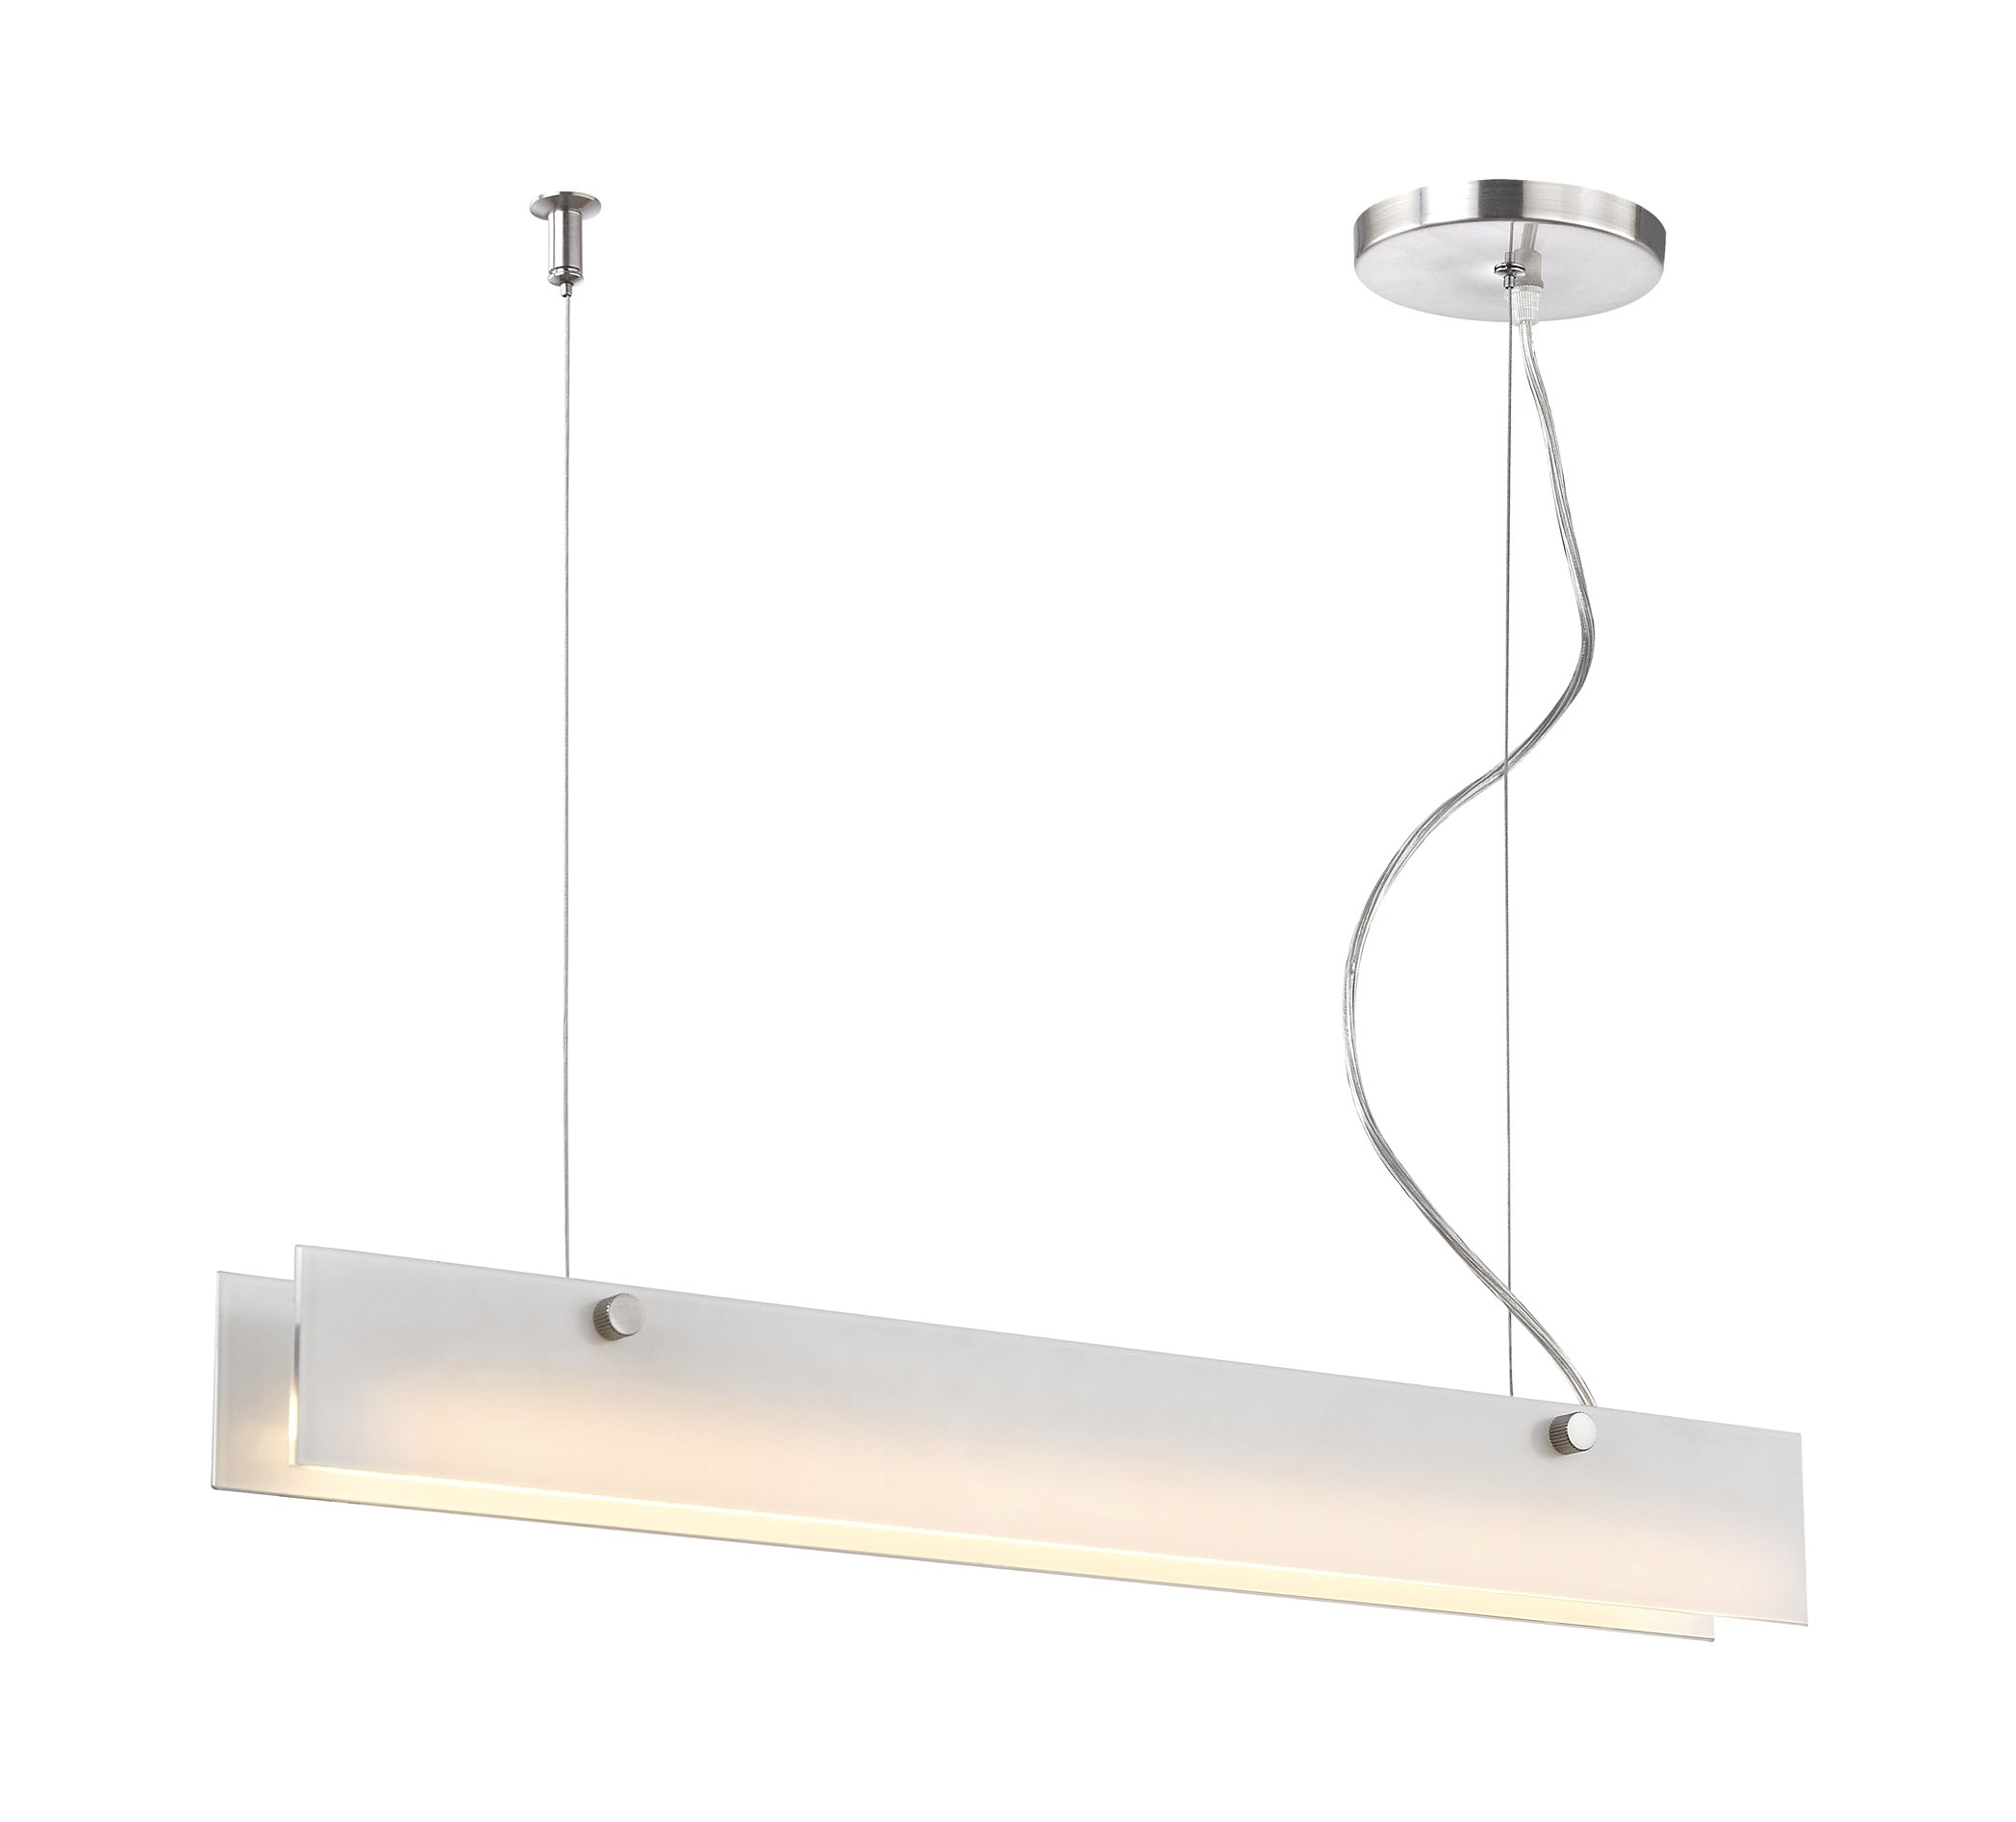 Elk Lighting LC4020-10-98 Iris 10W LED Linear Suspension Pendant and Frosted White Glass, Aluminum